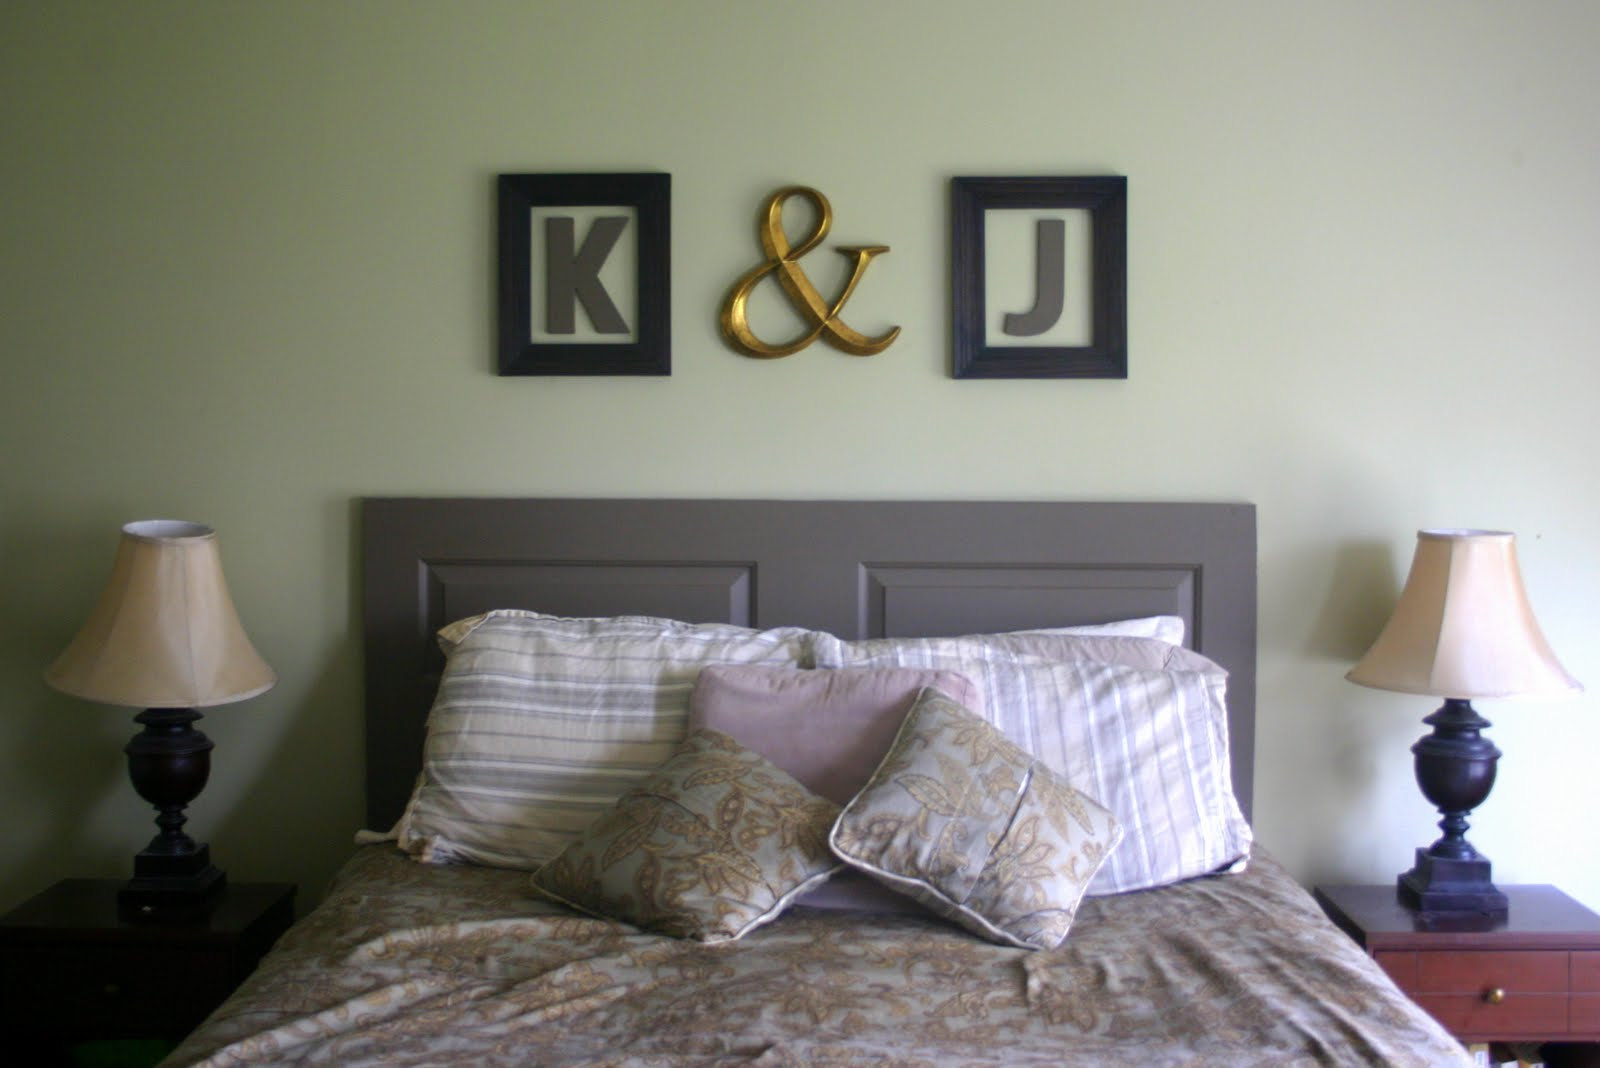 DIY Headboards   East Coast Creative Blog DIY Headboards